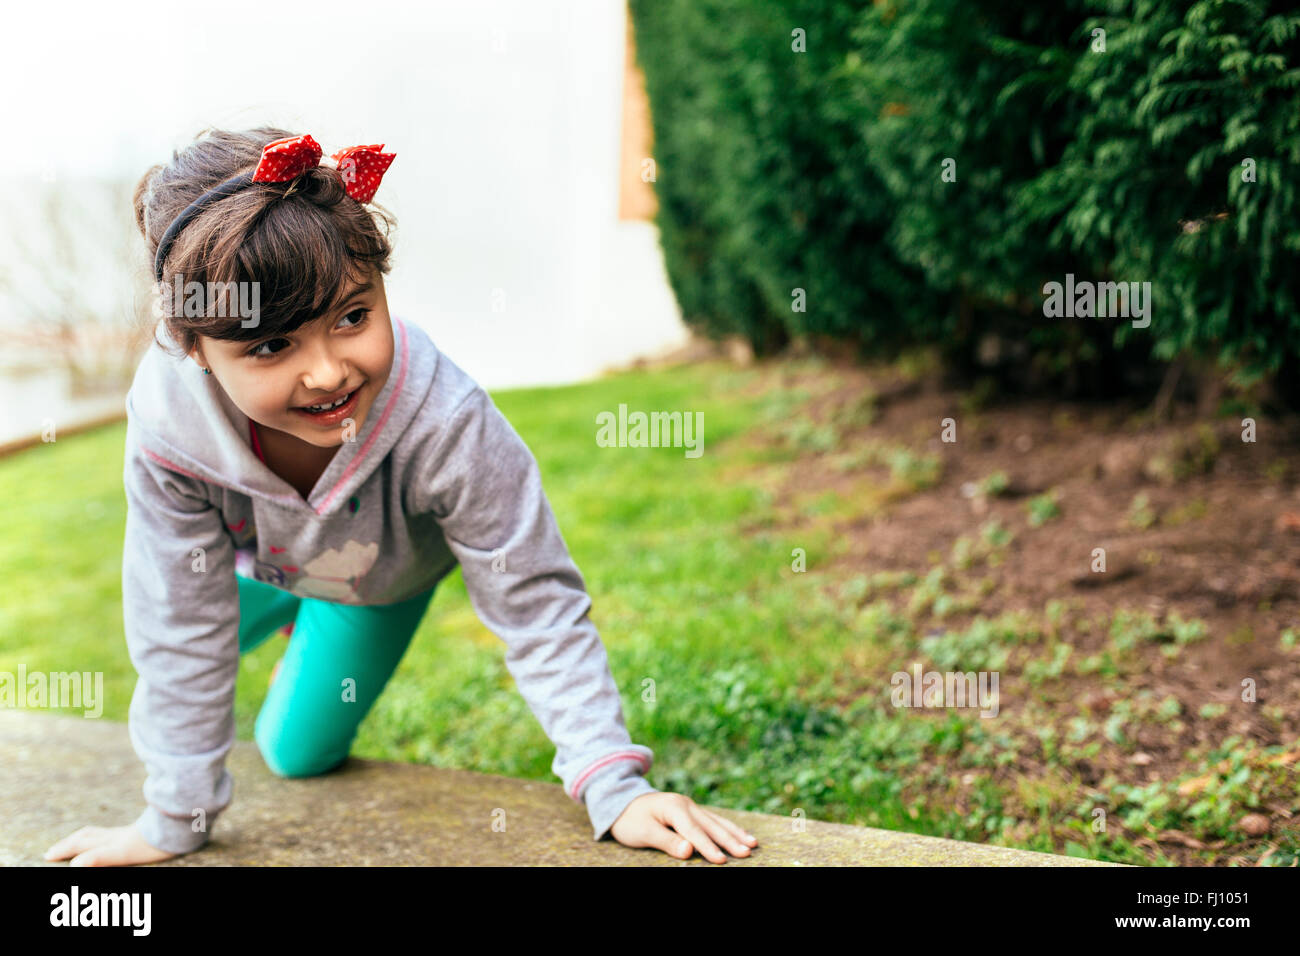 Portrait of little girl playing outside - Stock Image